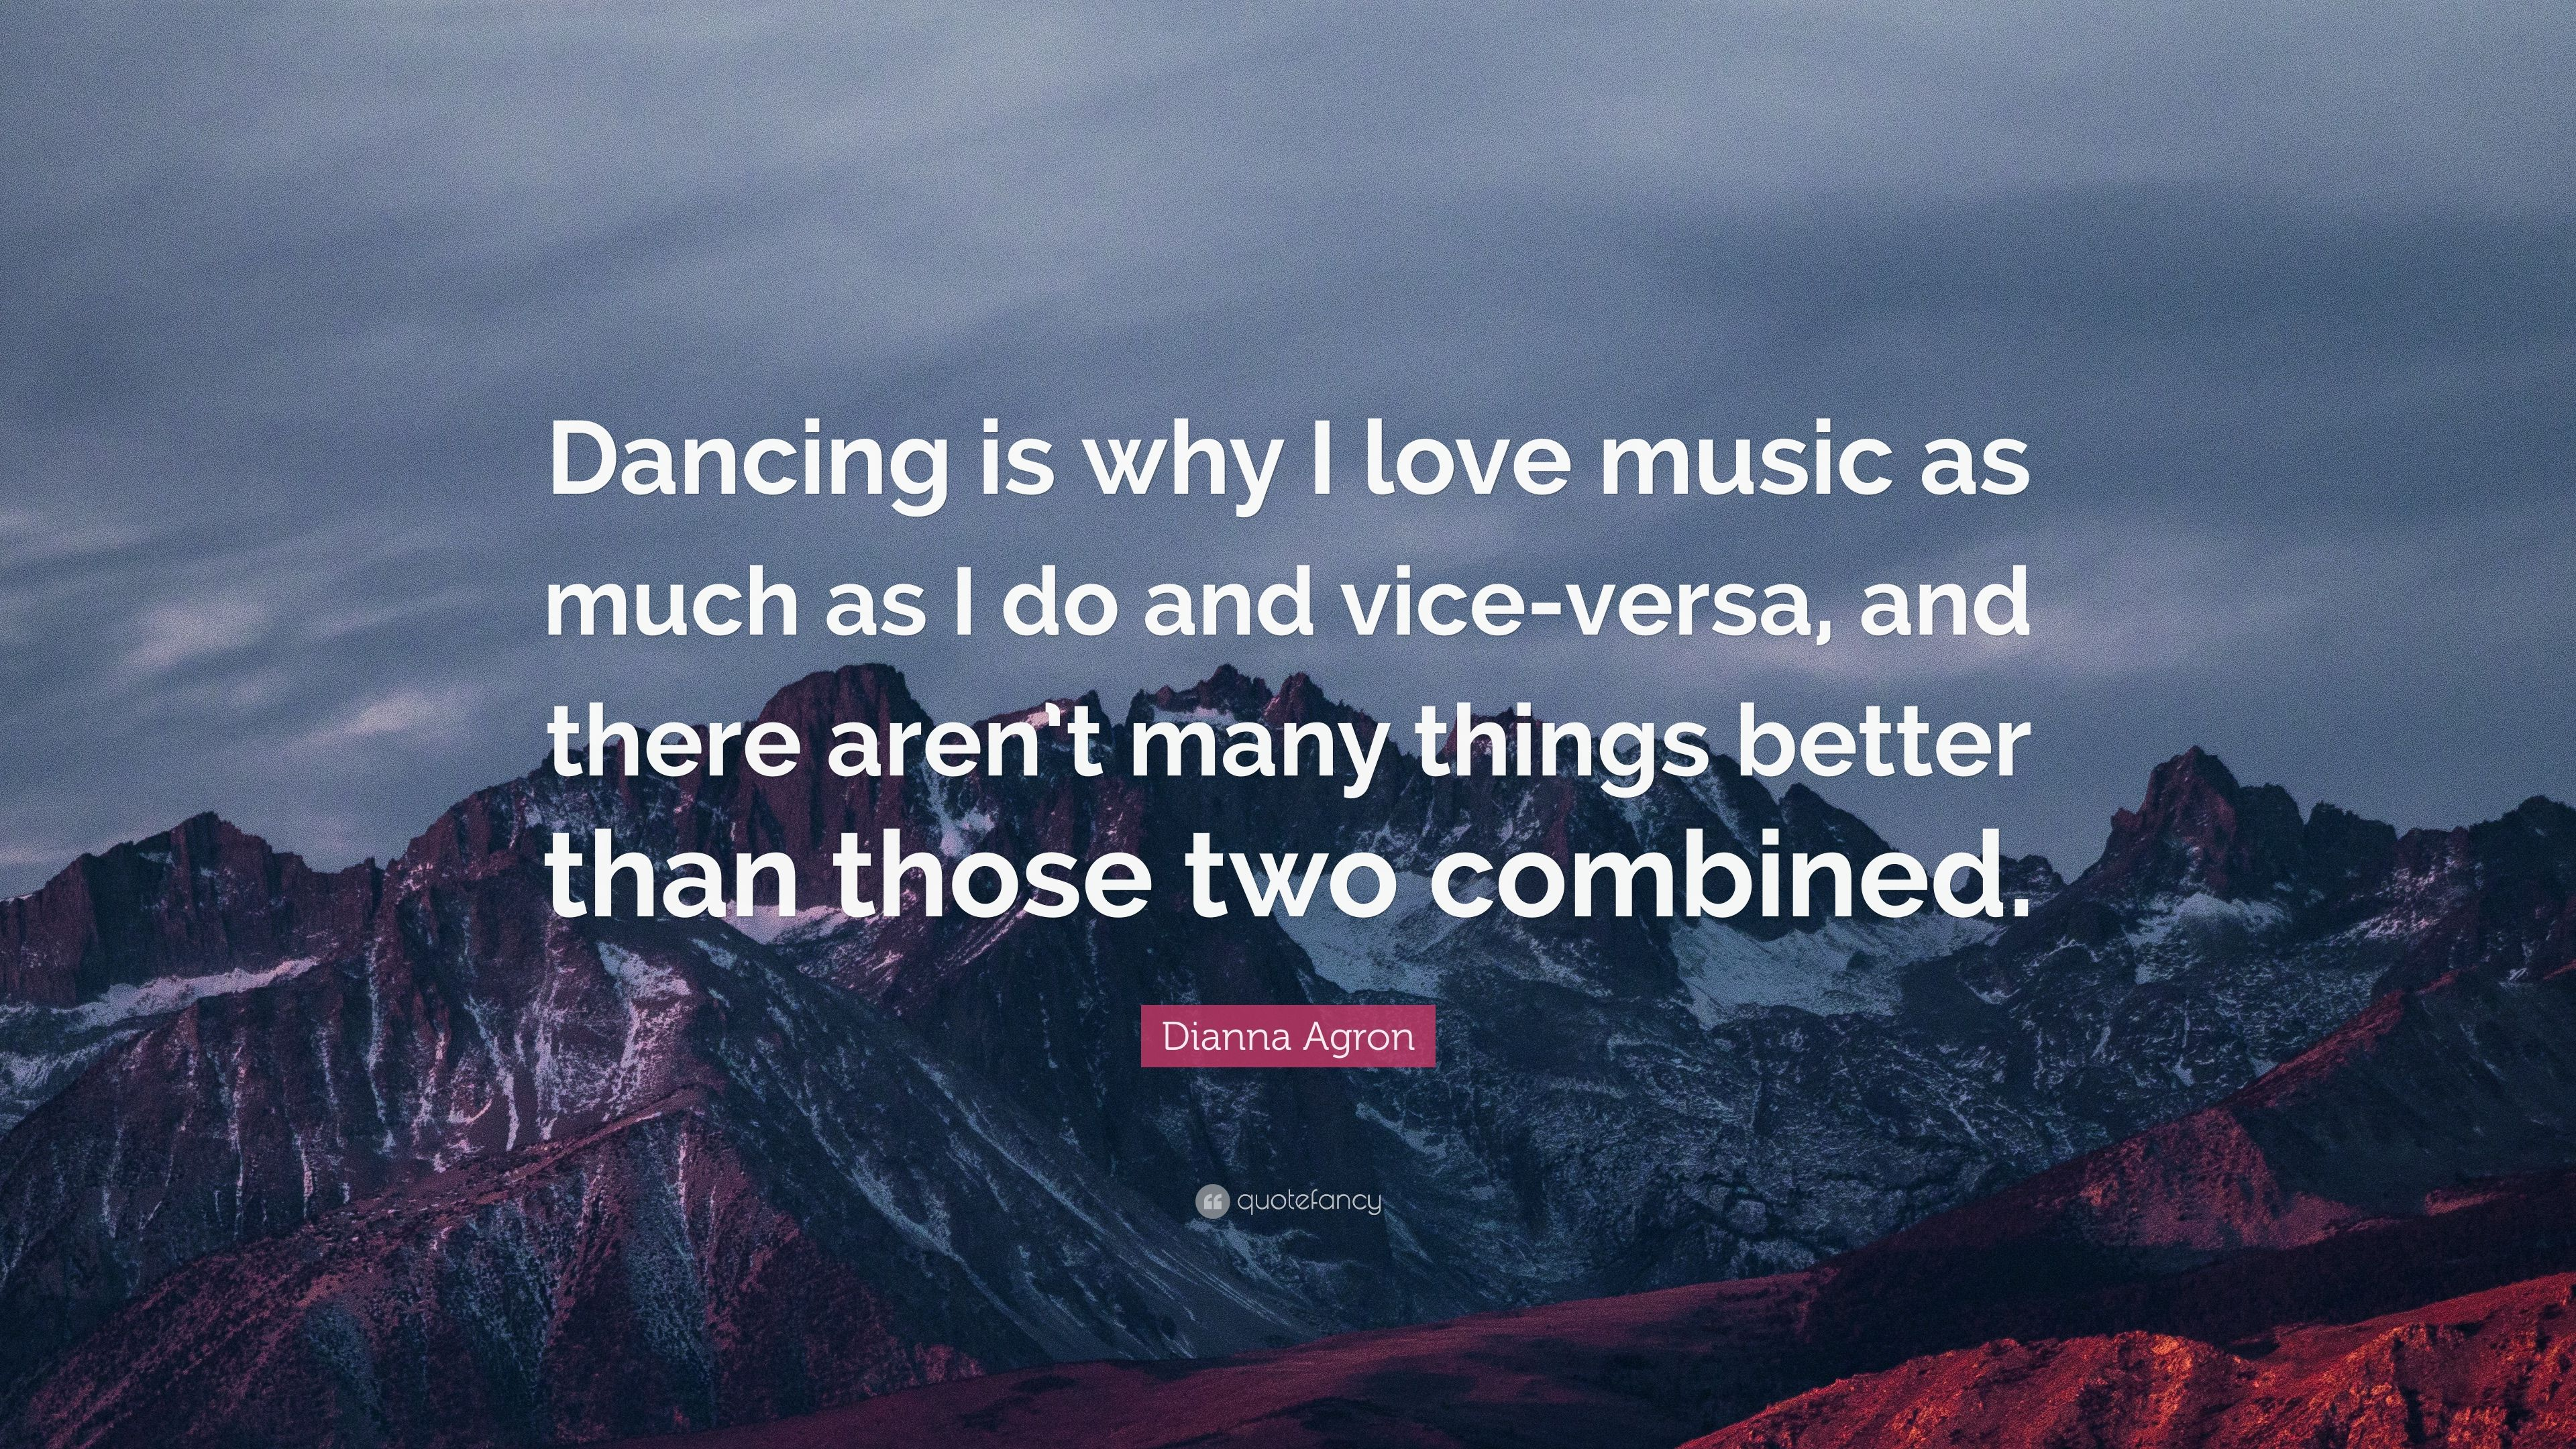 Dianna Agron Quote Dancing Is Why I Love Music As Much As I Do And